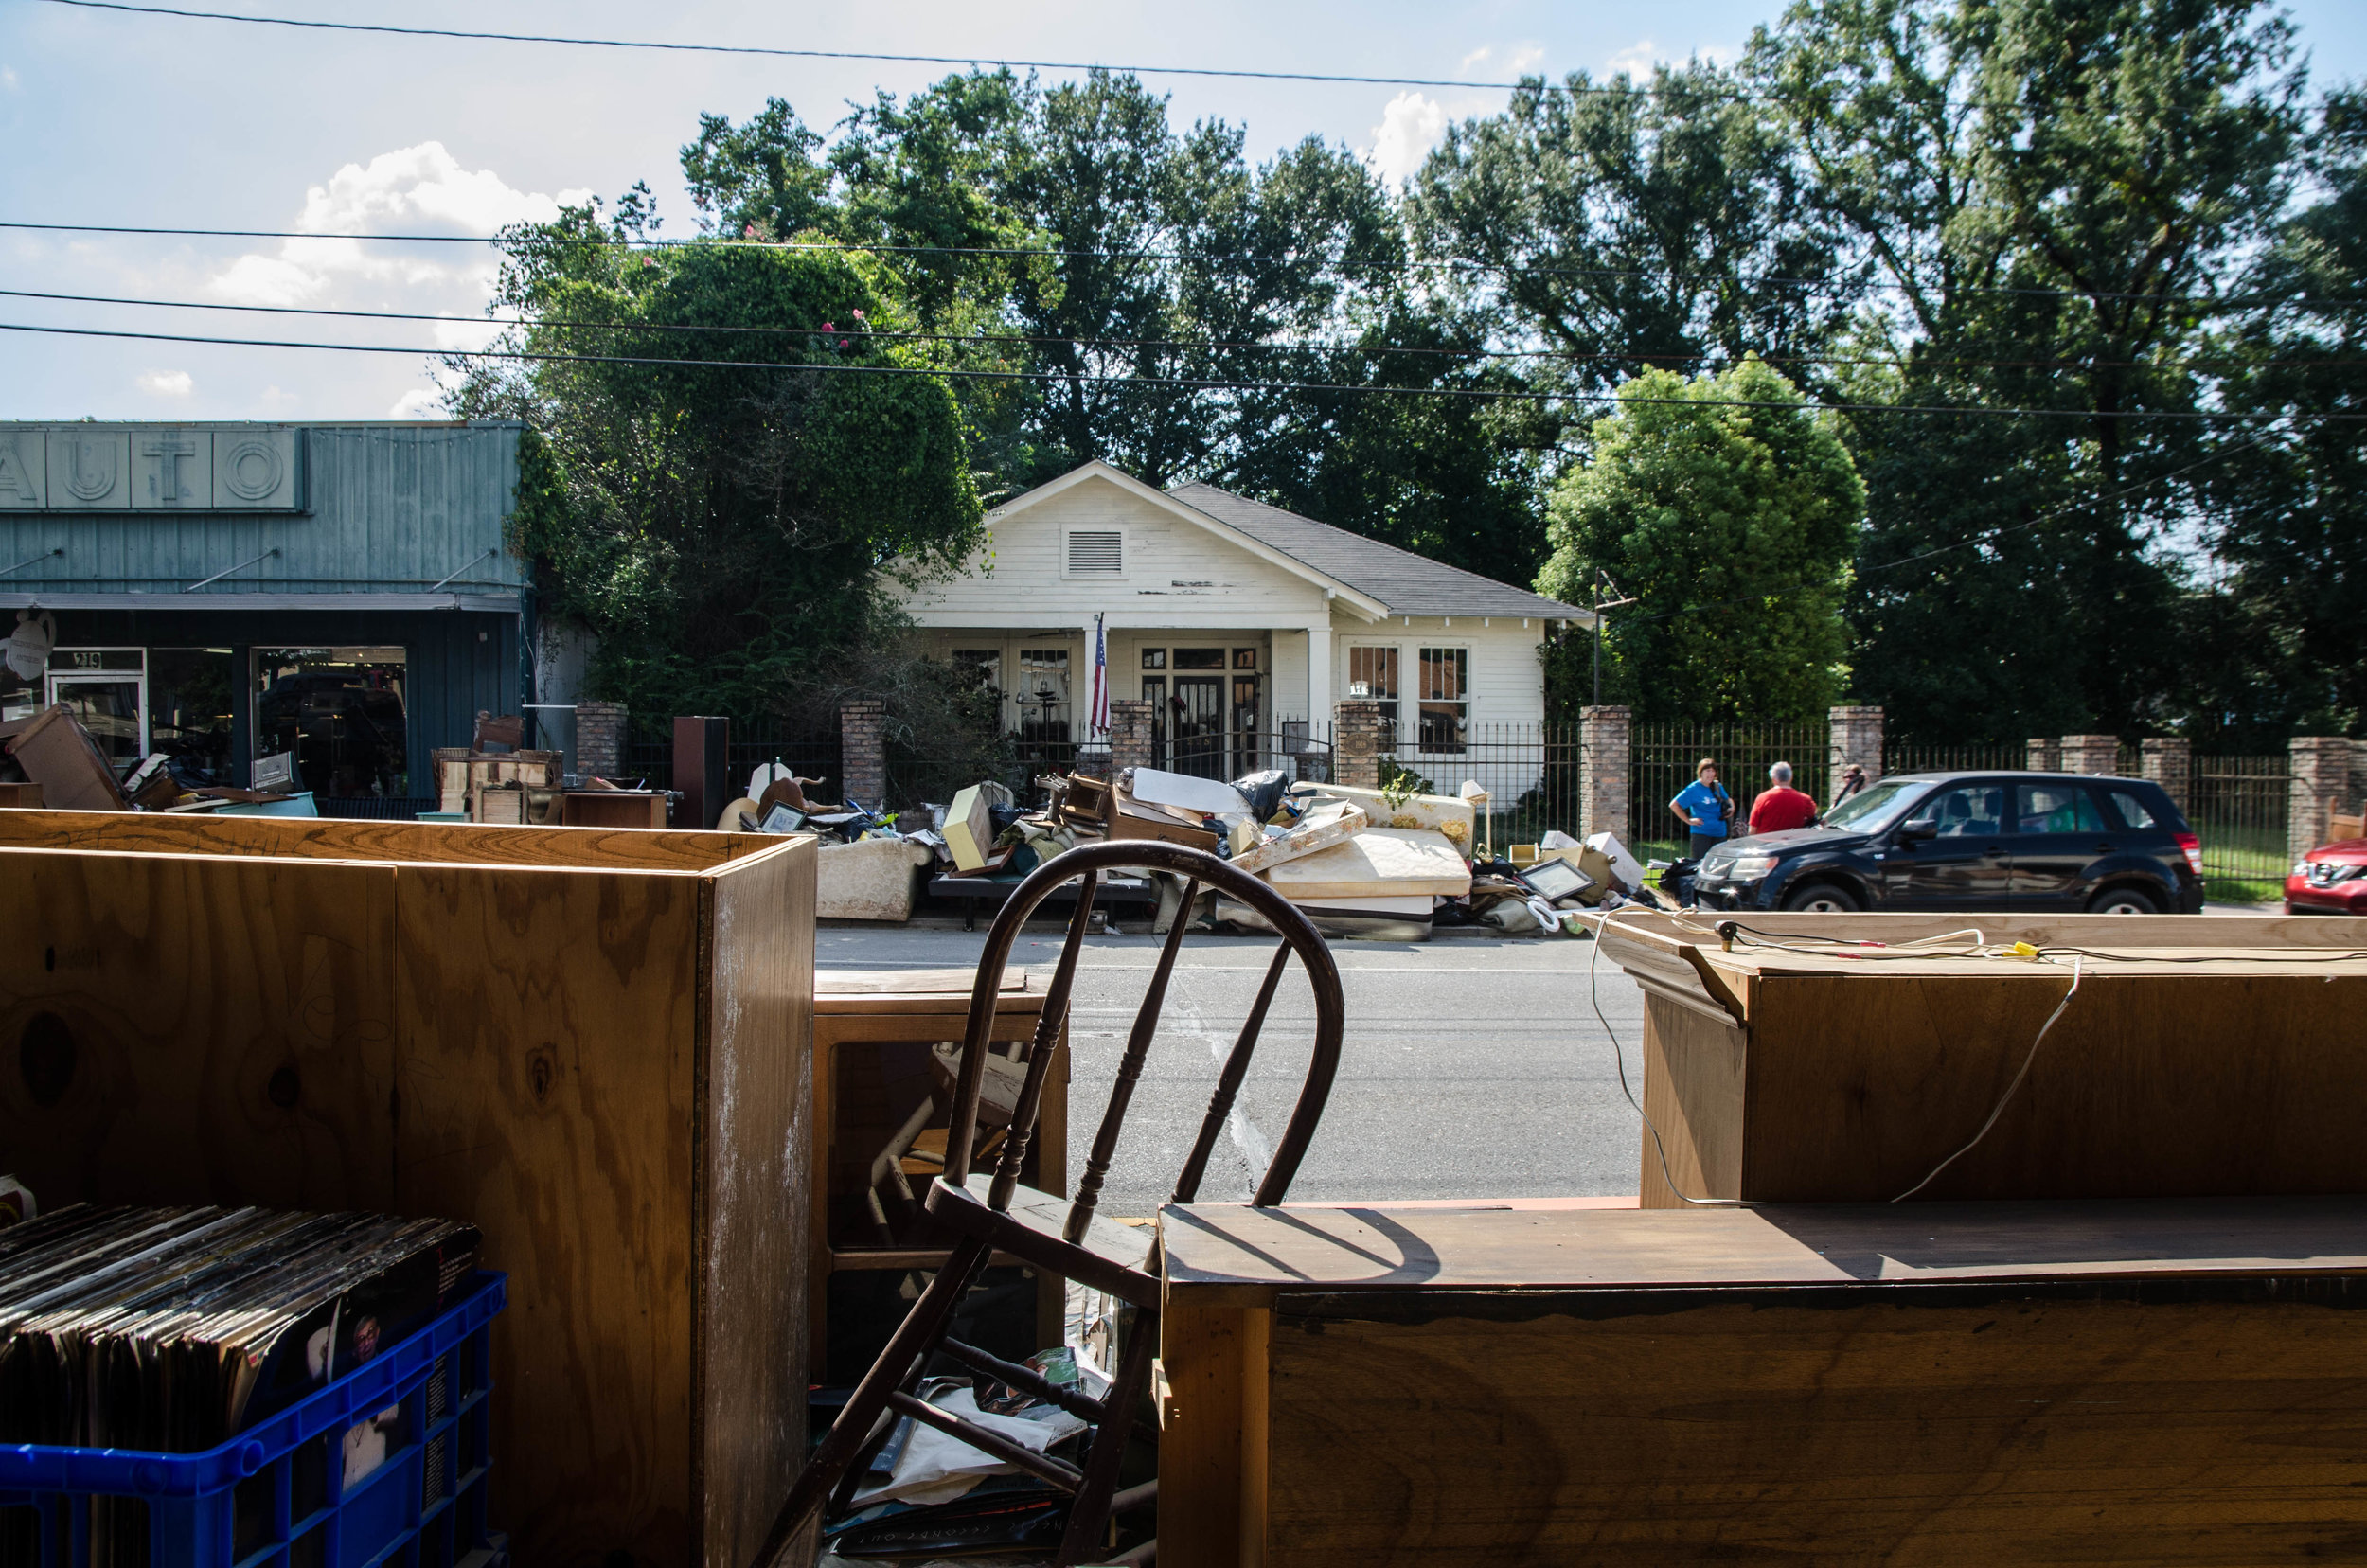 Damaged belongings line the streets in downtown Denham Springs, Louisiana.